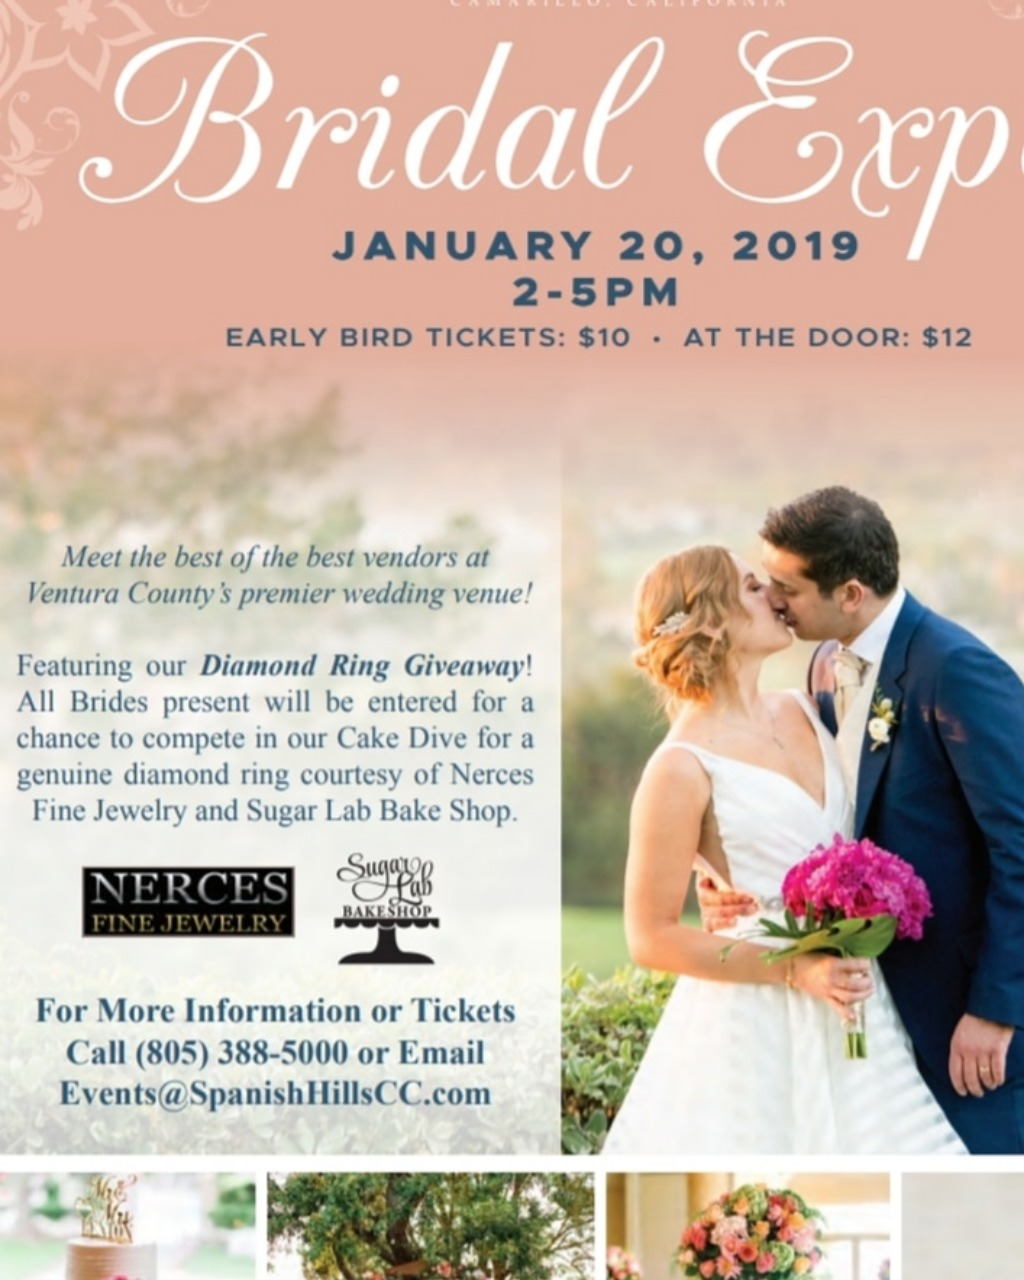 Spanish Hills Country Club Bridal Expo